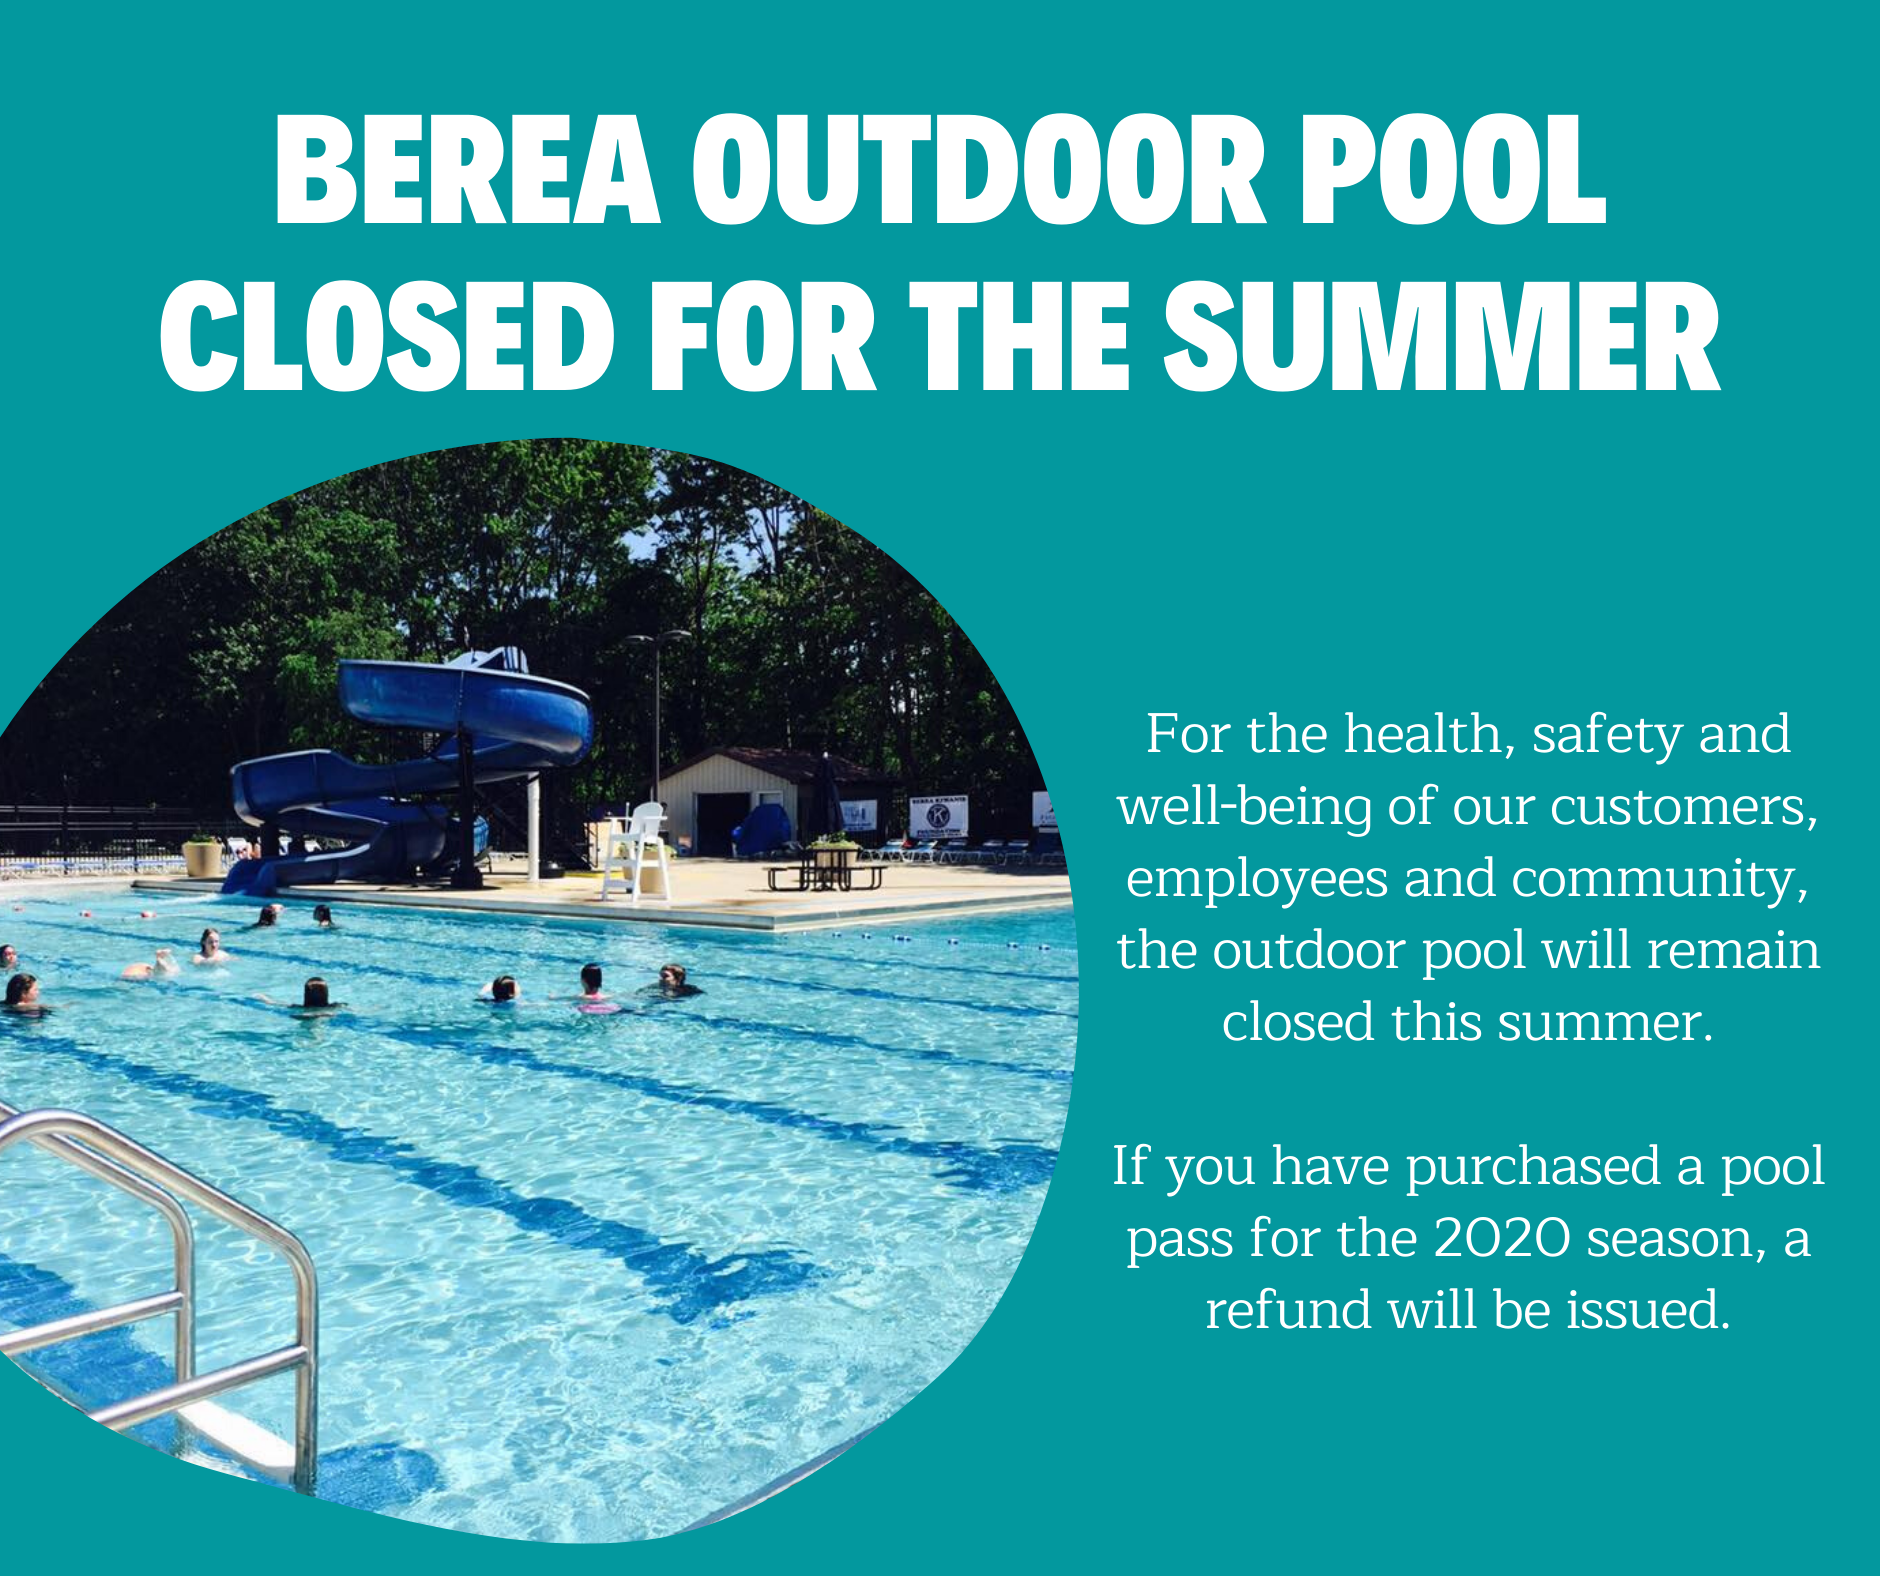 Pool closed for summer ad